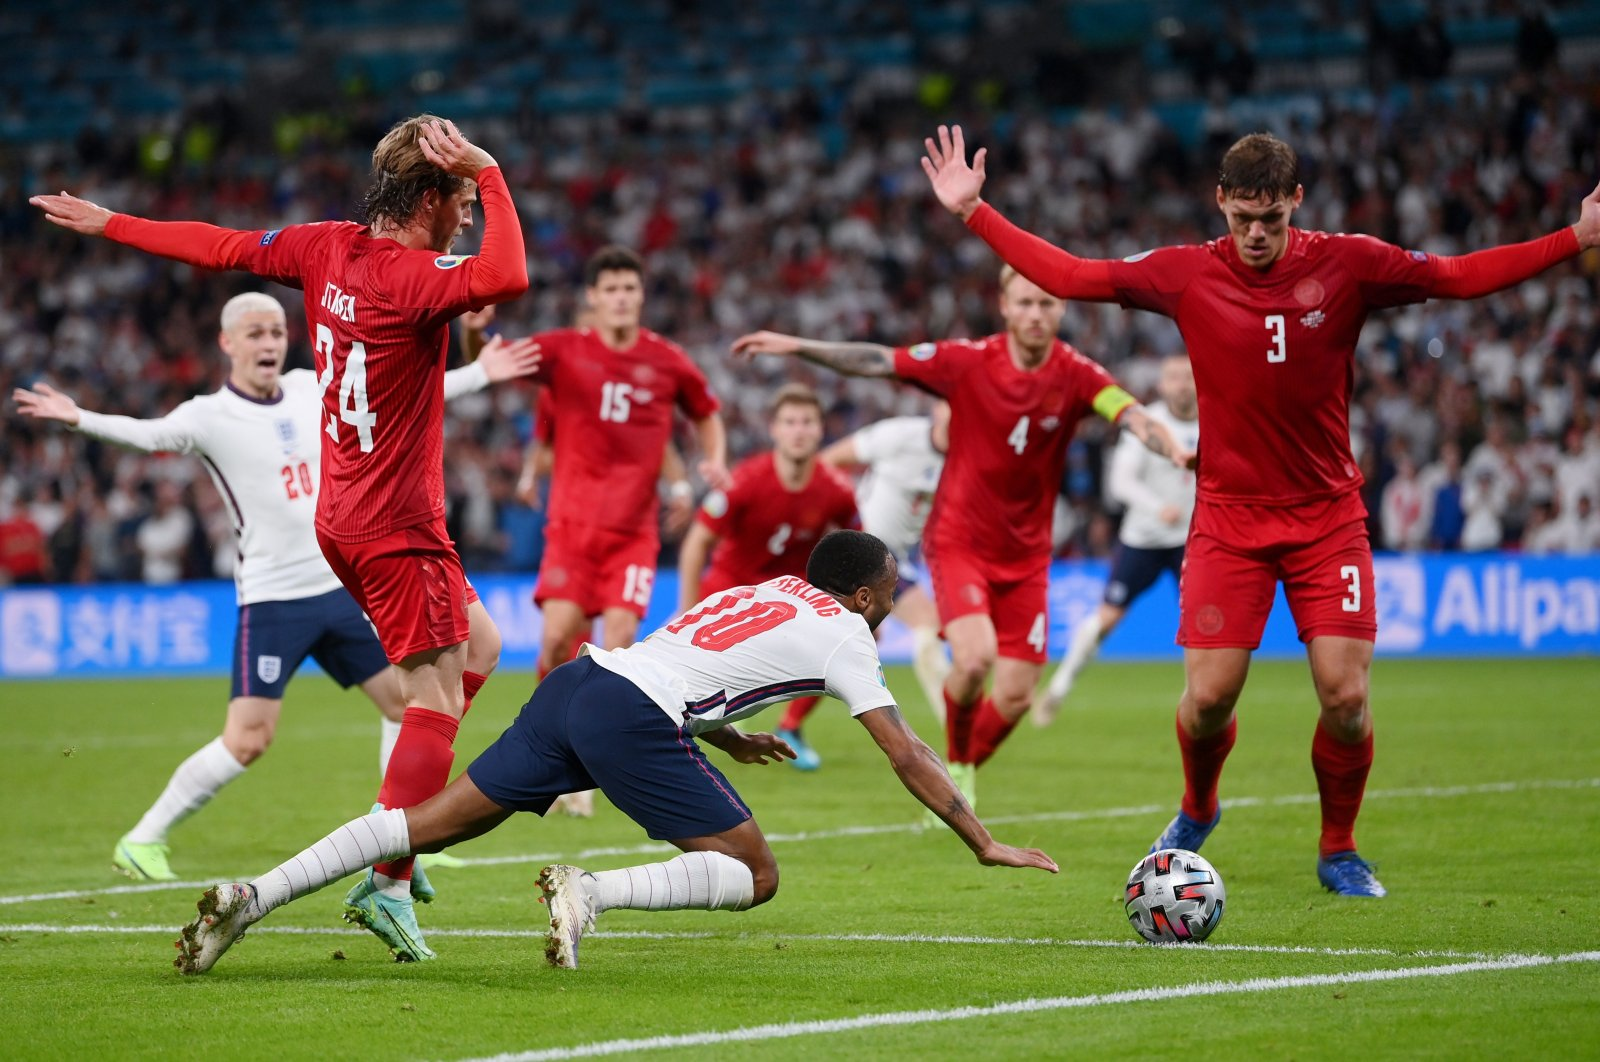 England's Raheem Sterling (C) goes down inside the Denmark penalty box for a penalty during the Euro 2020 semifinal at the Wembley Stadium, London, Britain, July 7, 2021. (Reuters Photo)